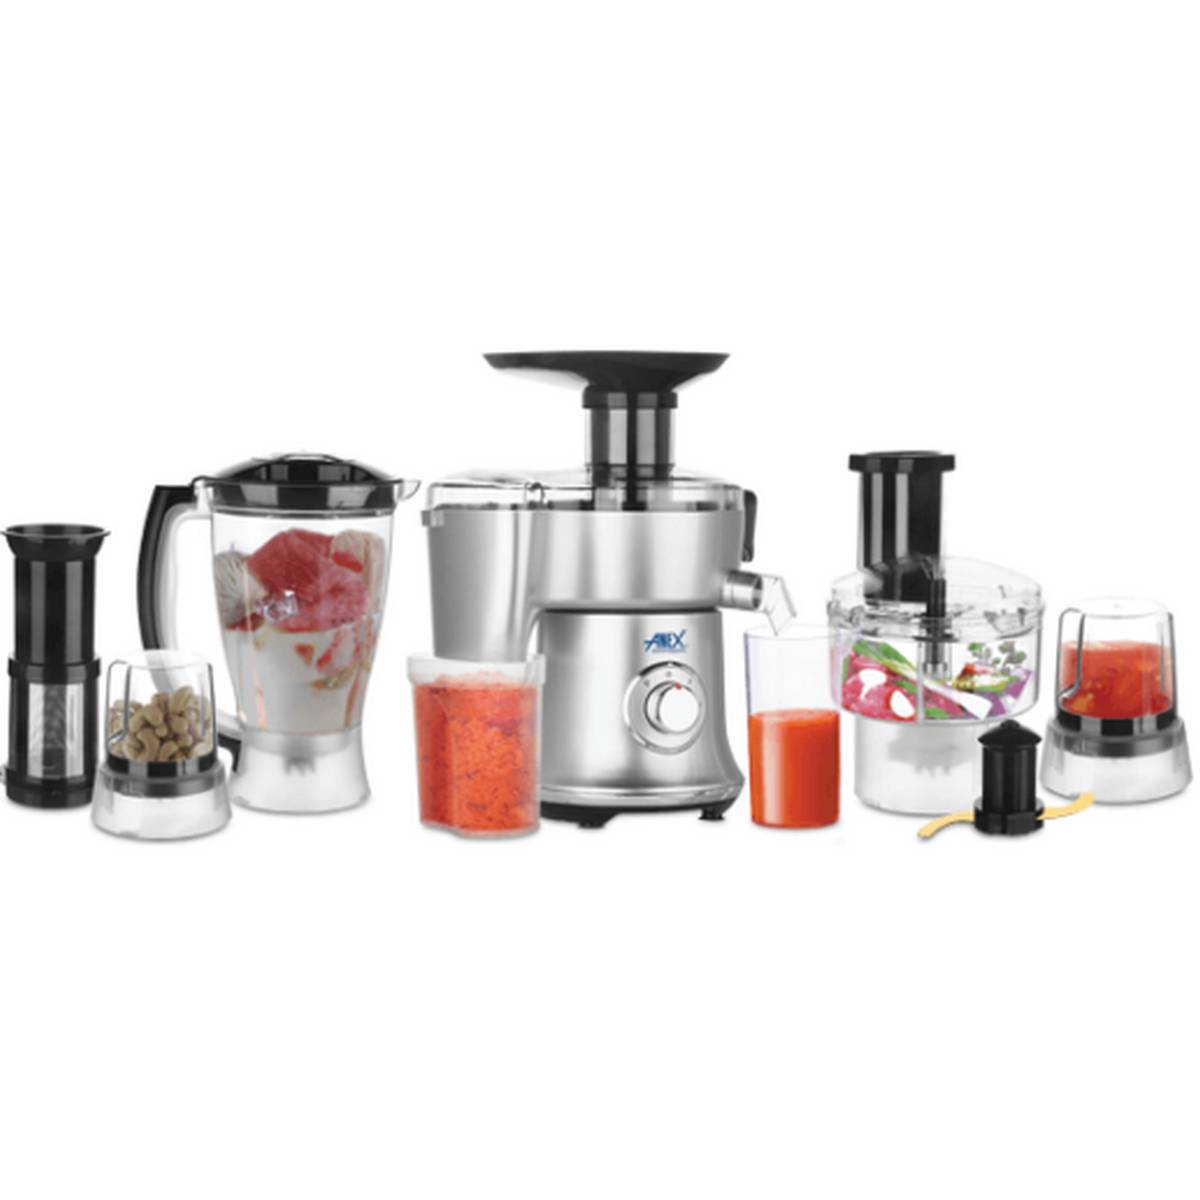 AG-3153EX - Anex Deluxe Kitchen Robot - Unbreakable Jug & Cups